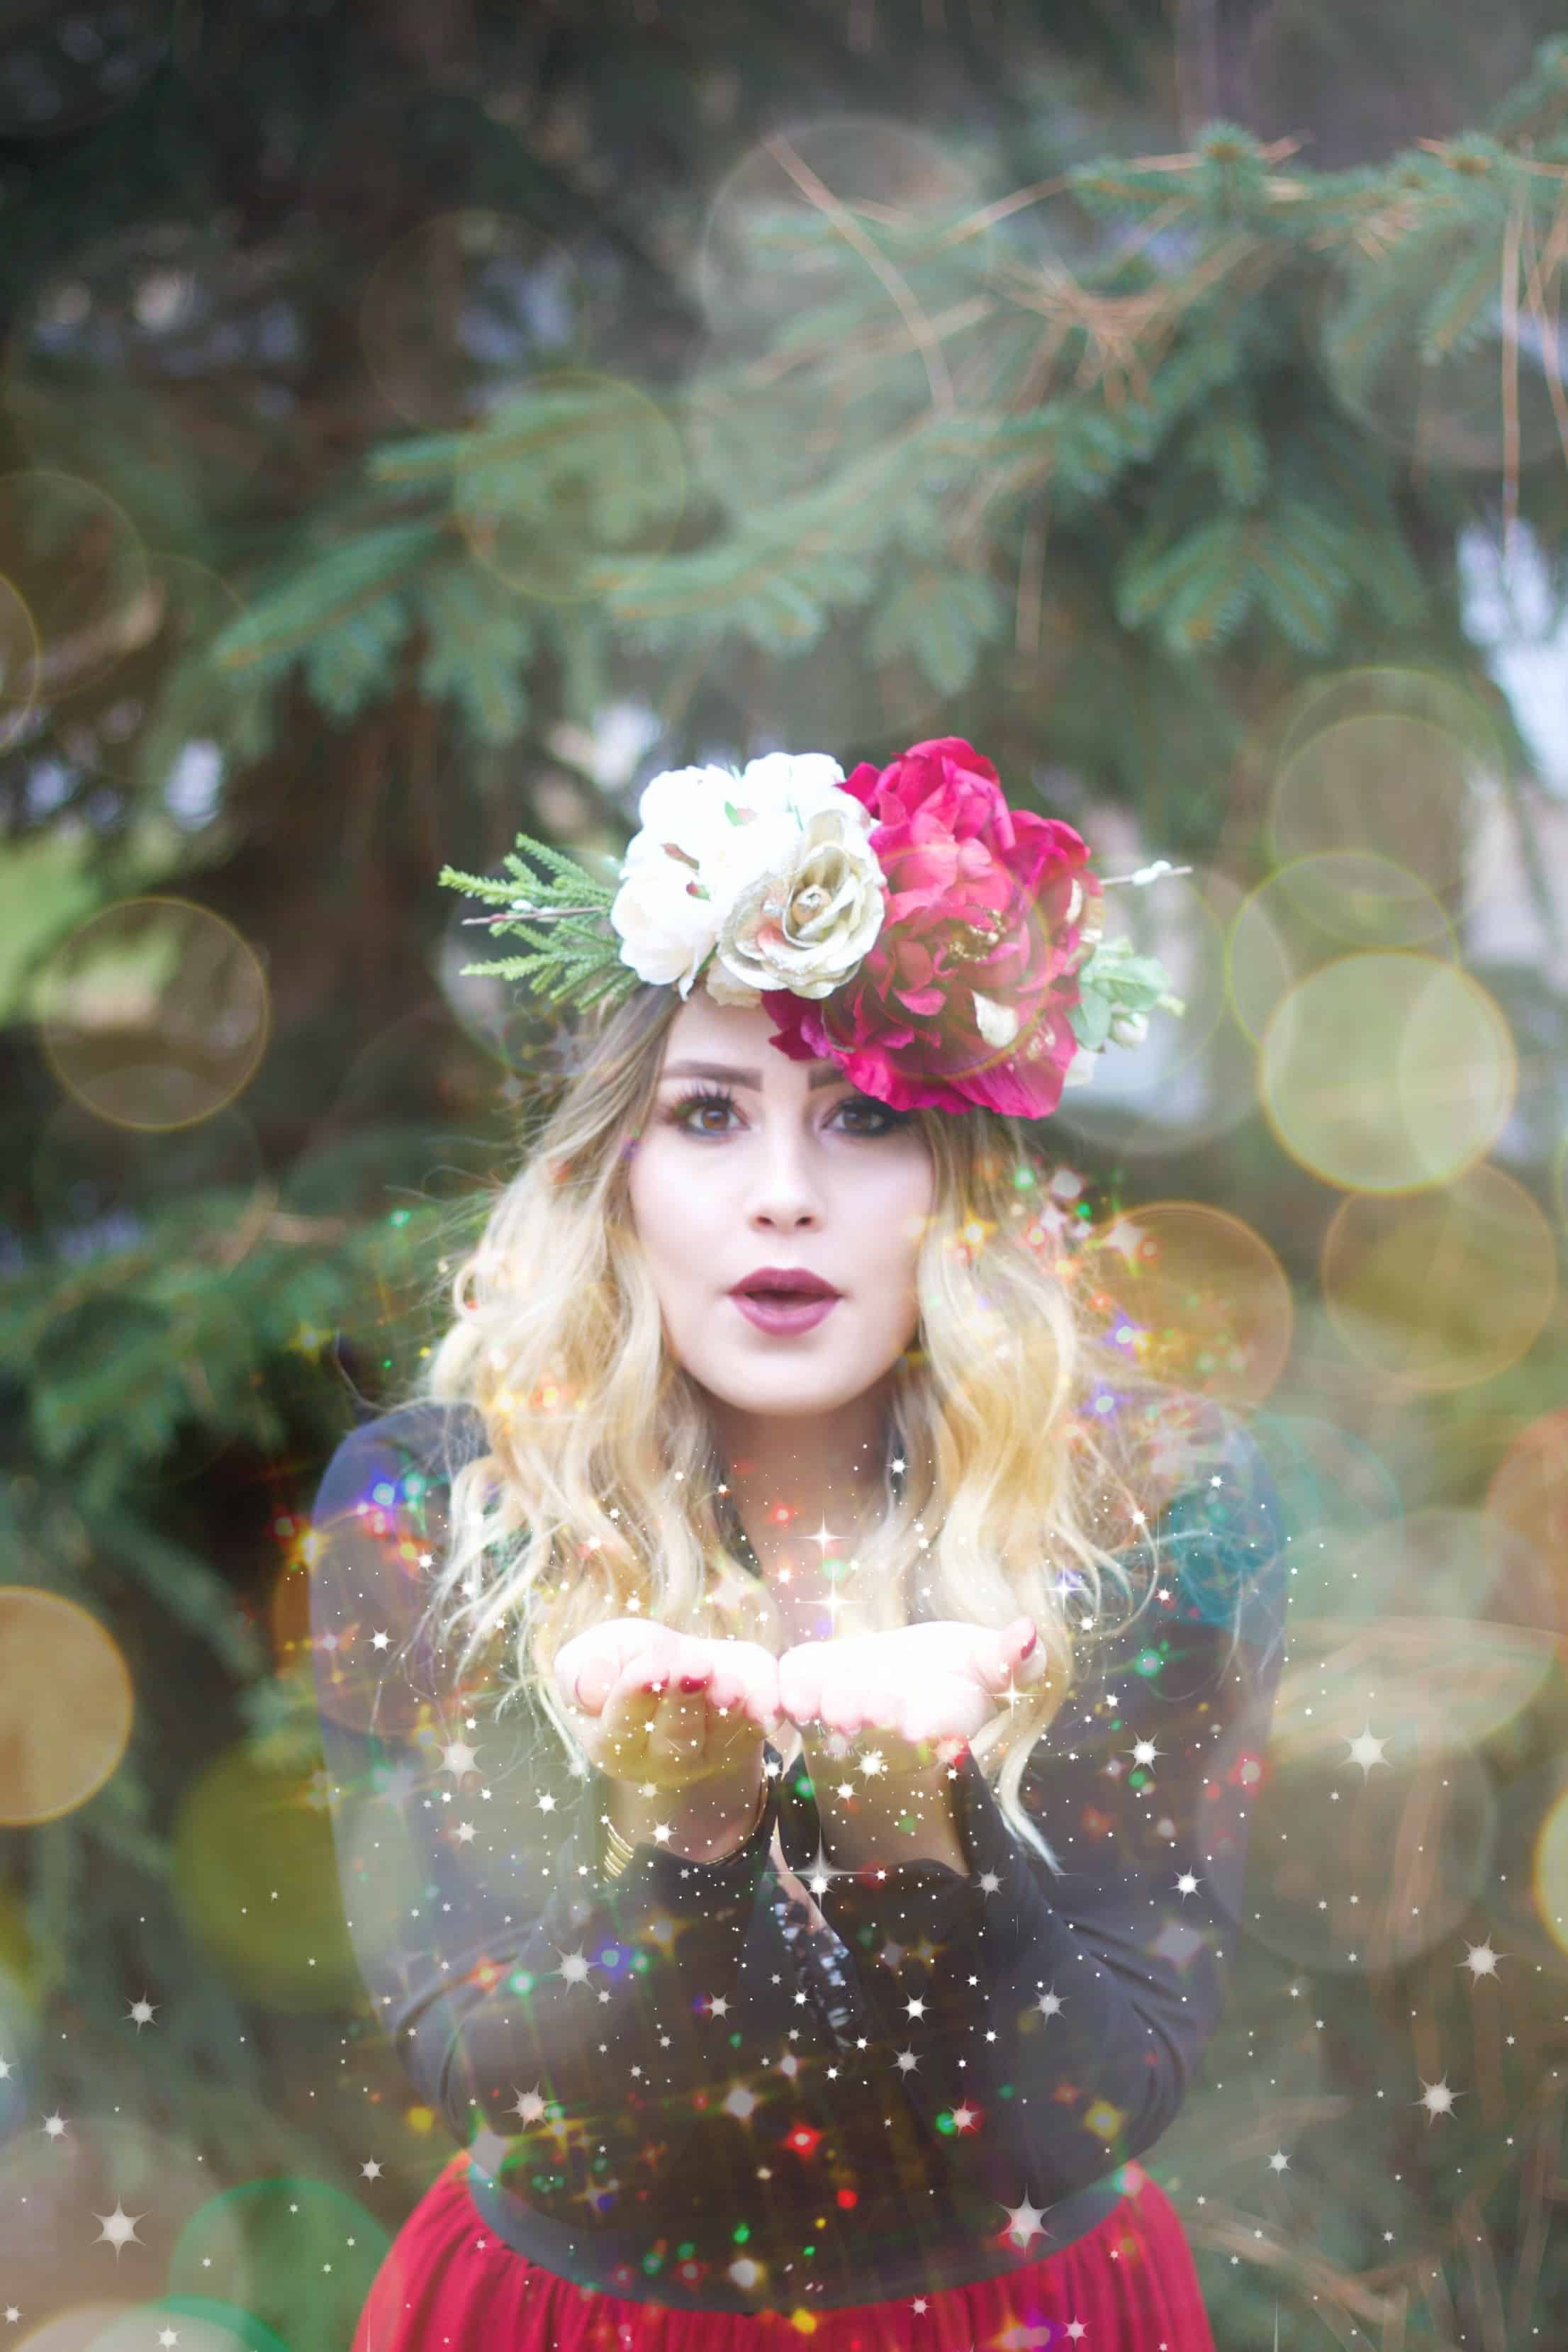 DIY Flower Crown, blowing glitter, flower crown, winter photos, winter photoshoot,